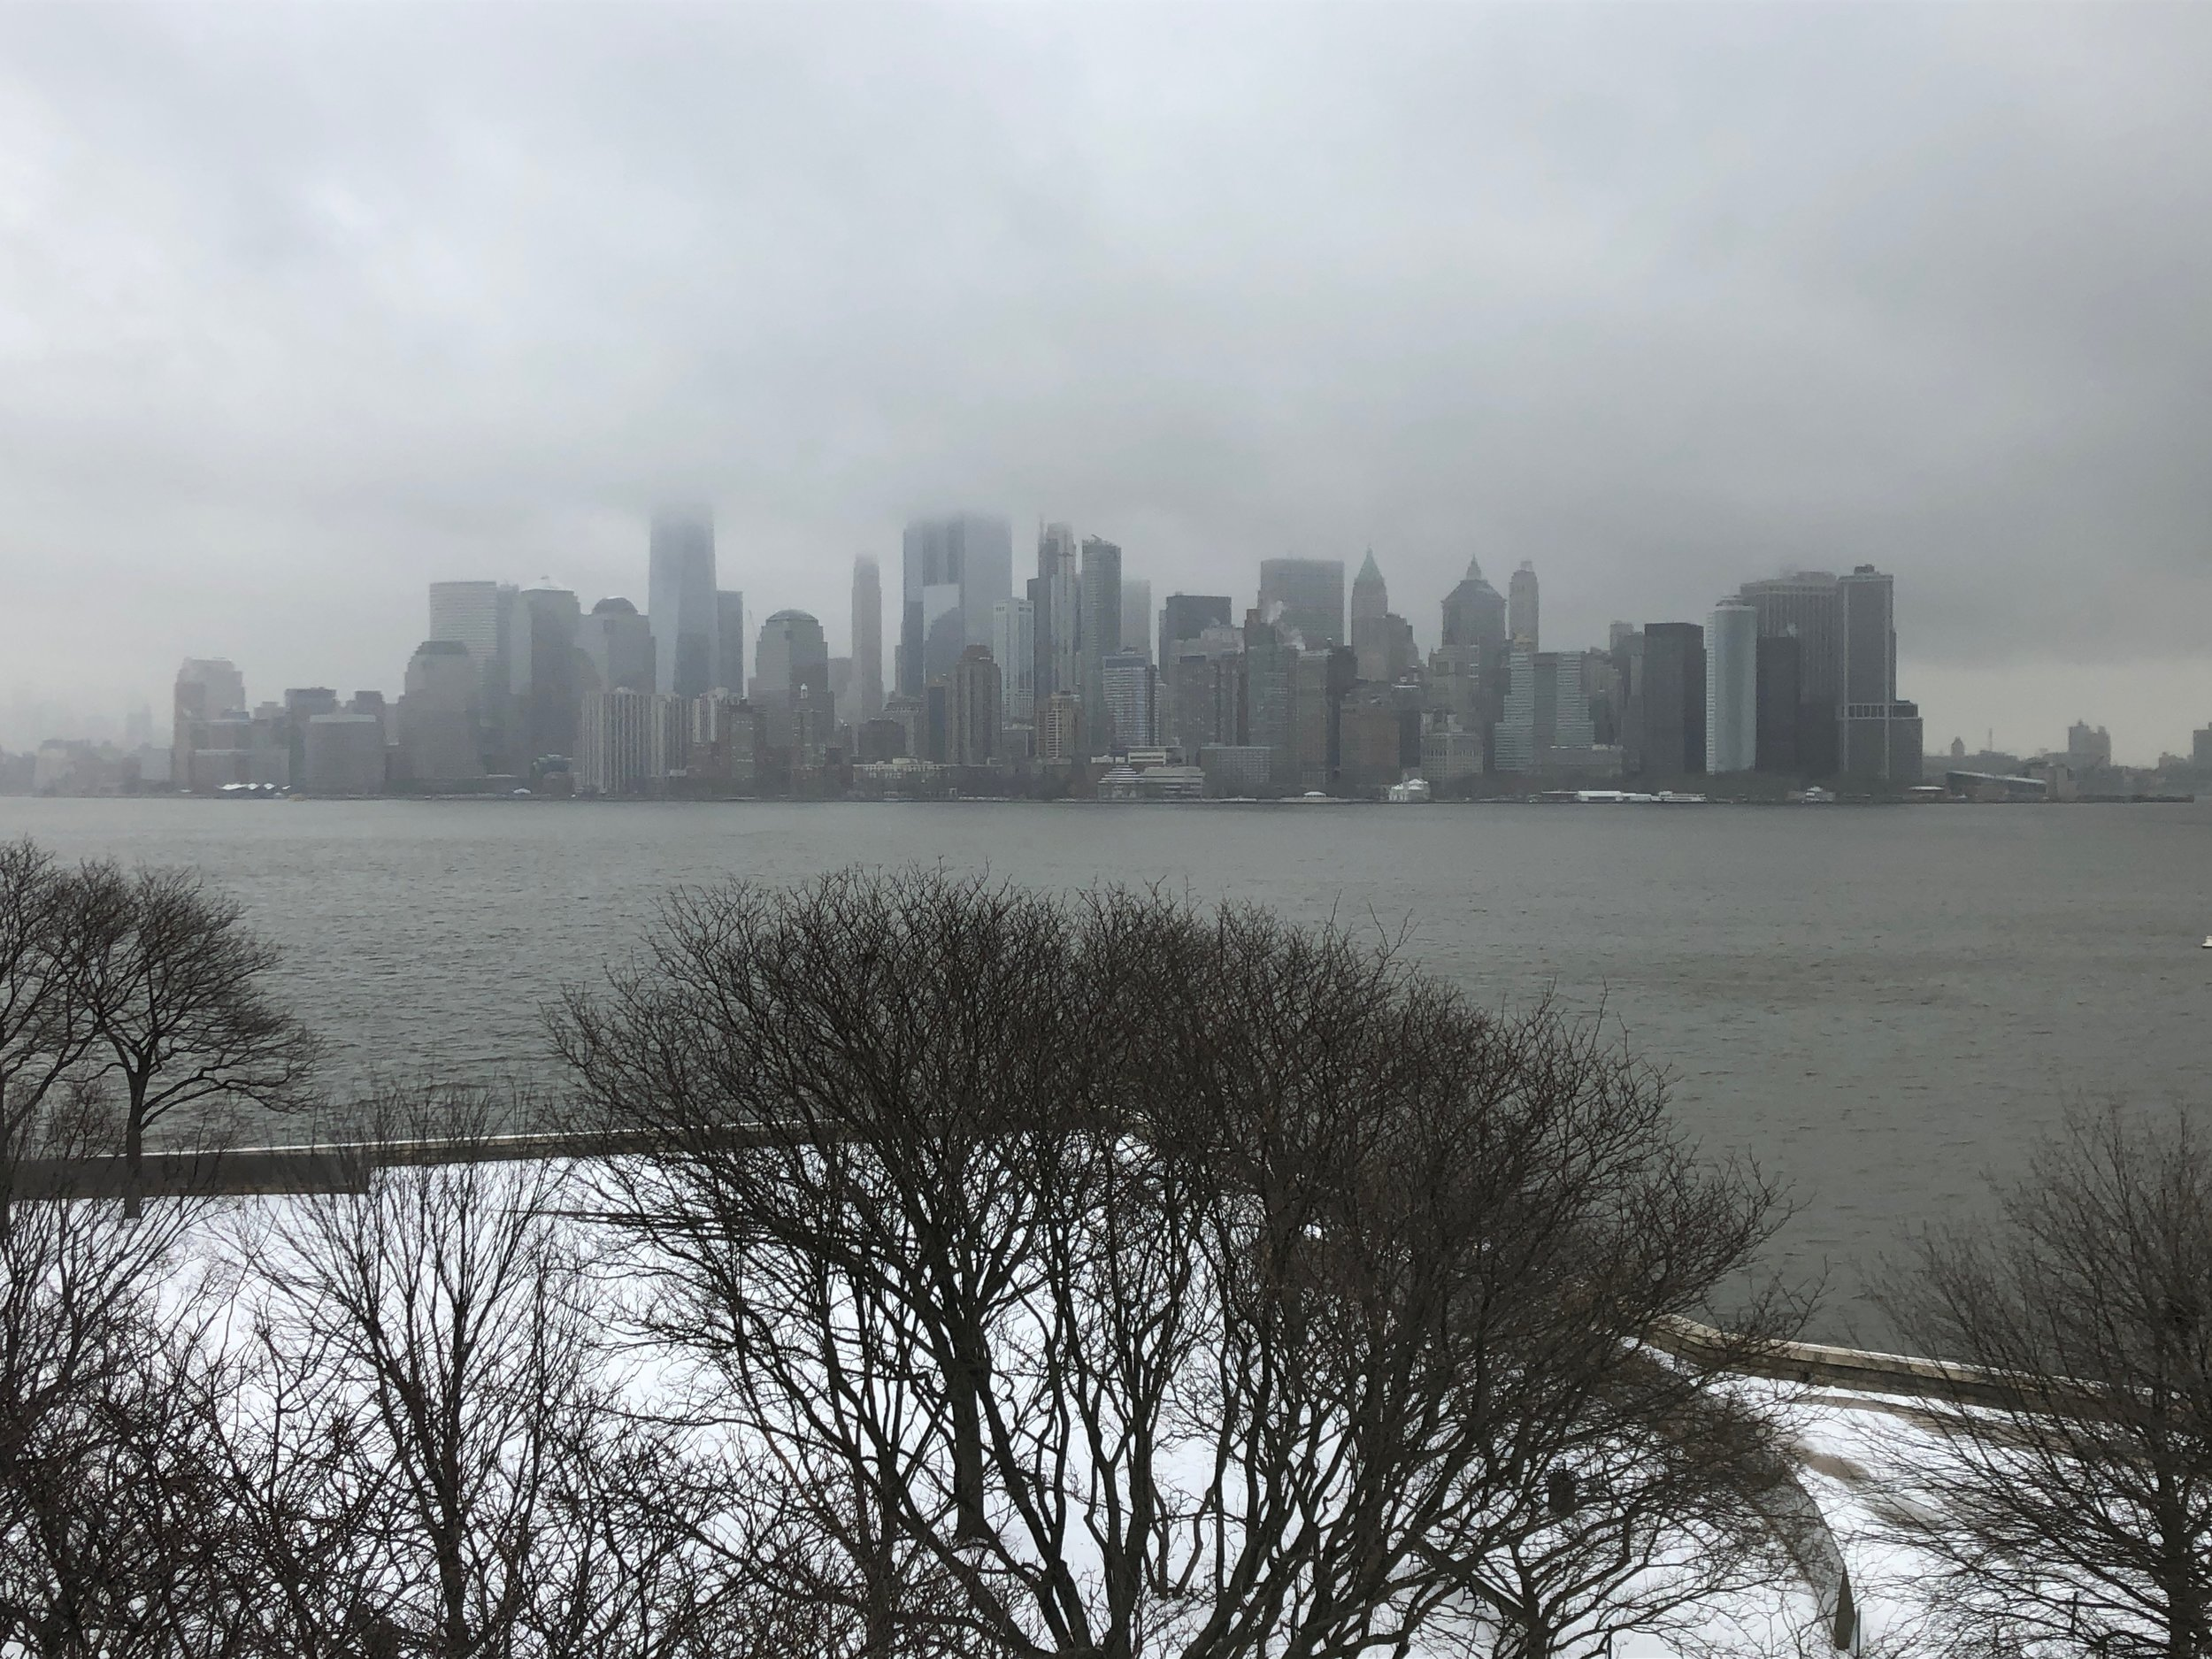 A view of NYC from Ellis Island